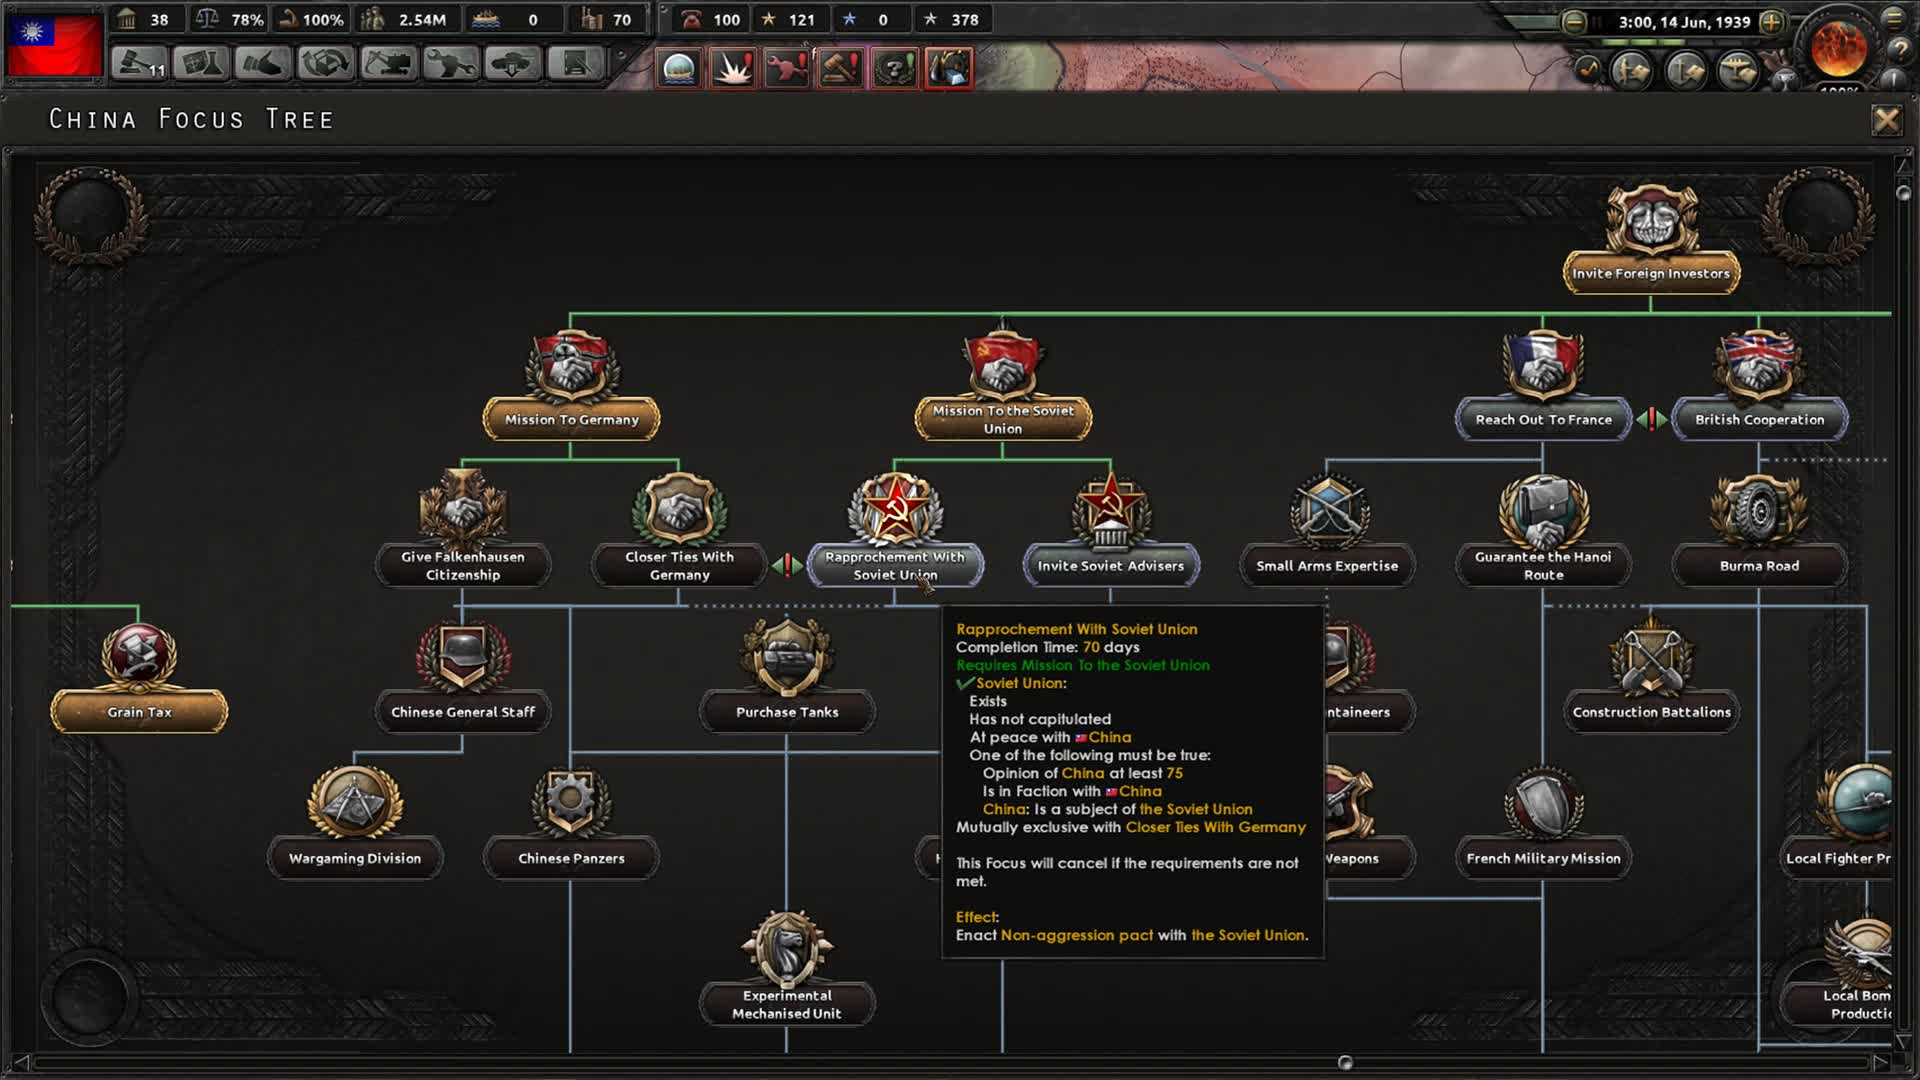 Tokshen - New to HoI4  Trying out China - Twitch